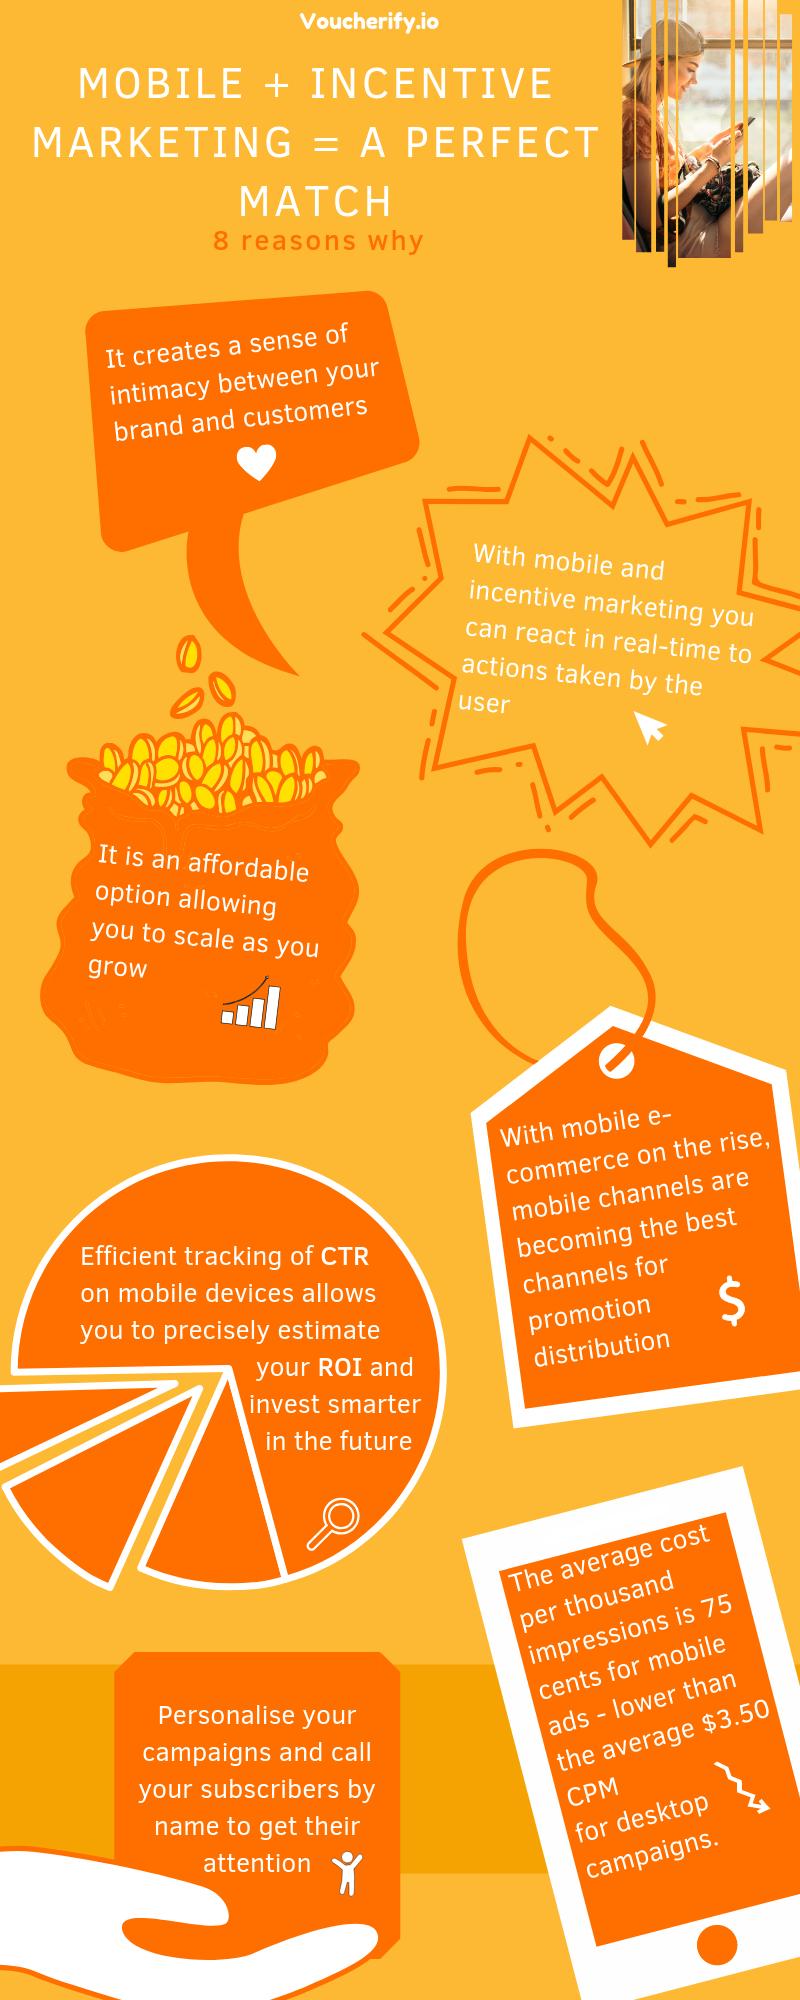 Mobile promotions - why they work (infographic)